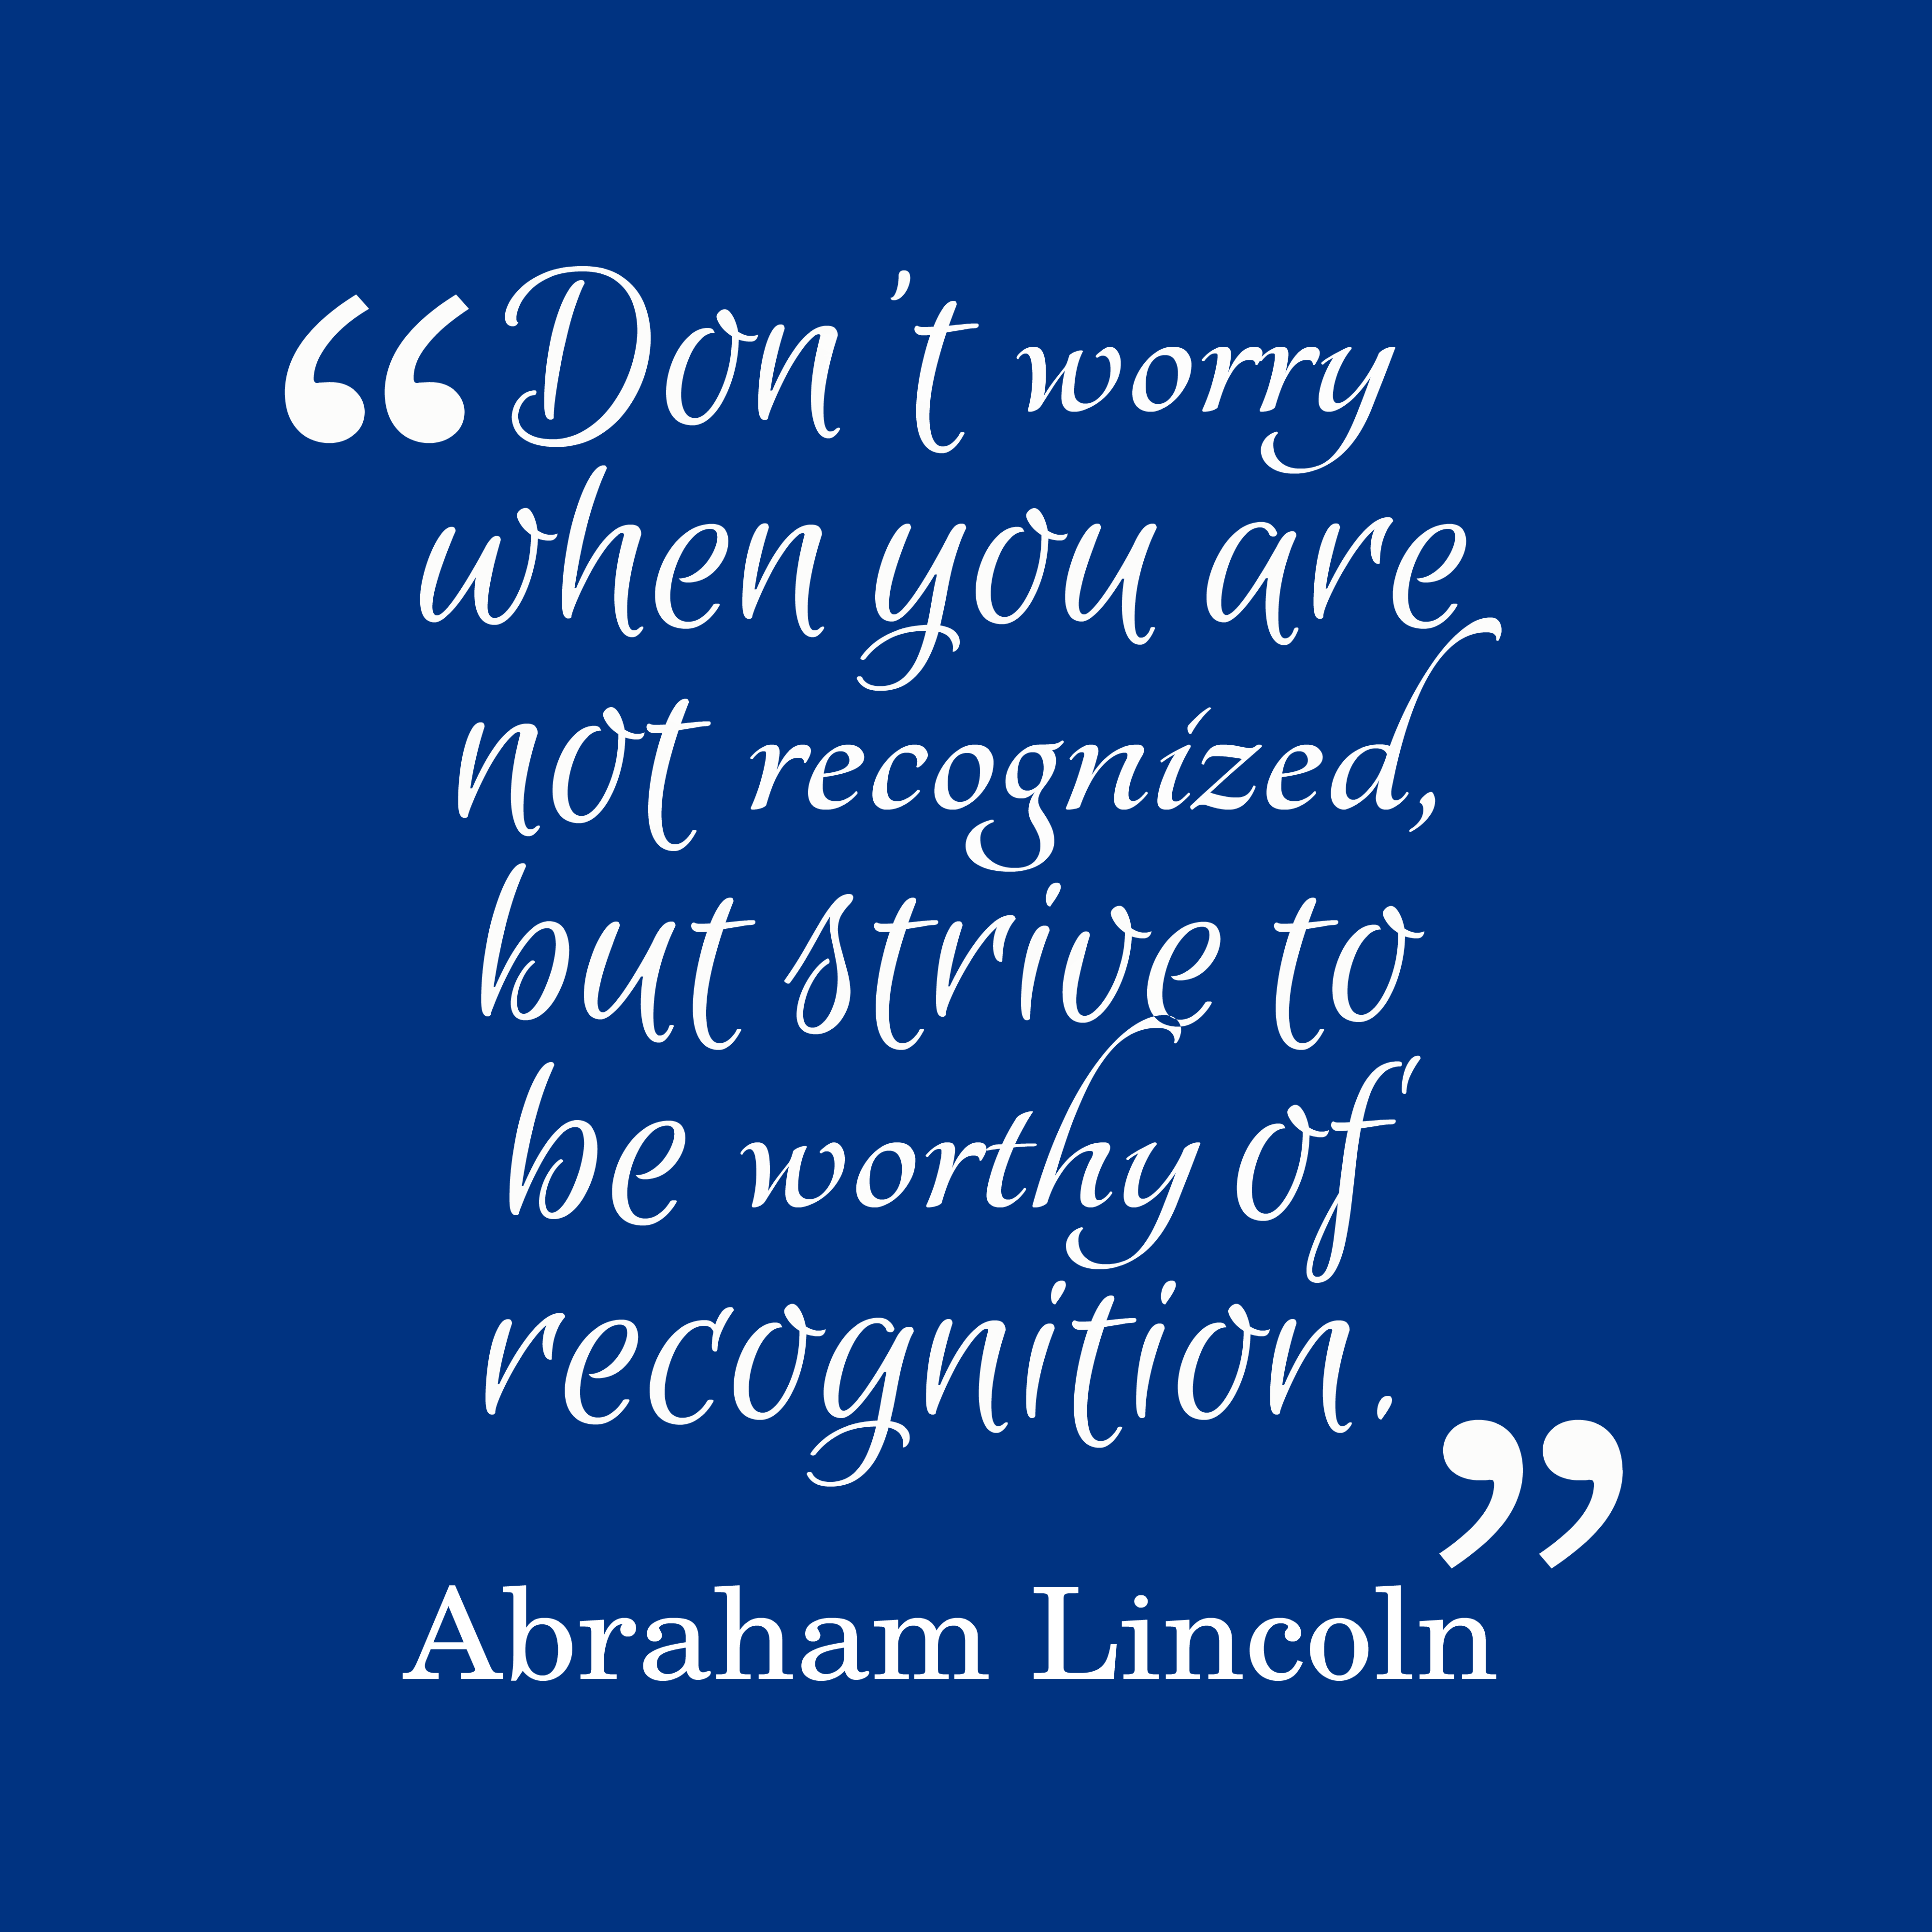 Abraham lincoln quote fool - Abraham Lincoln Quote About Ambition